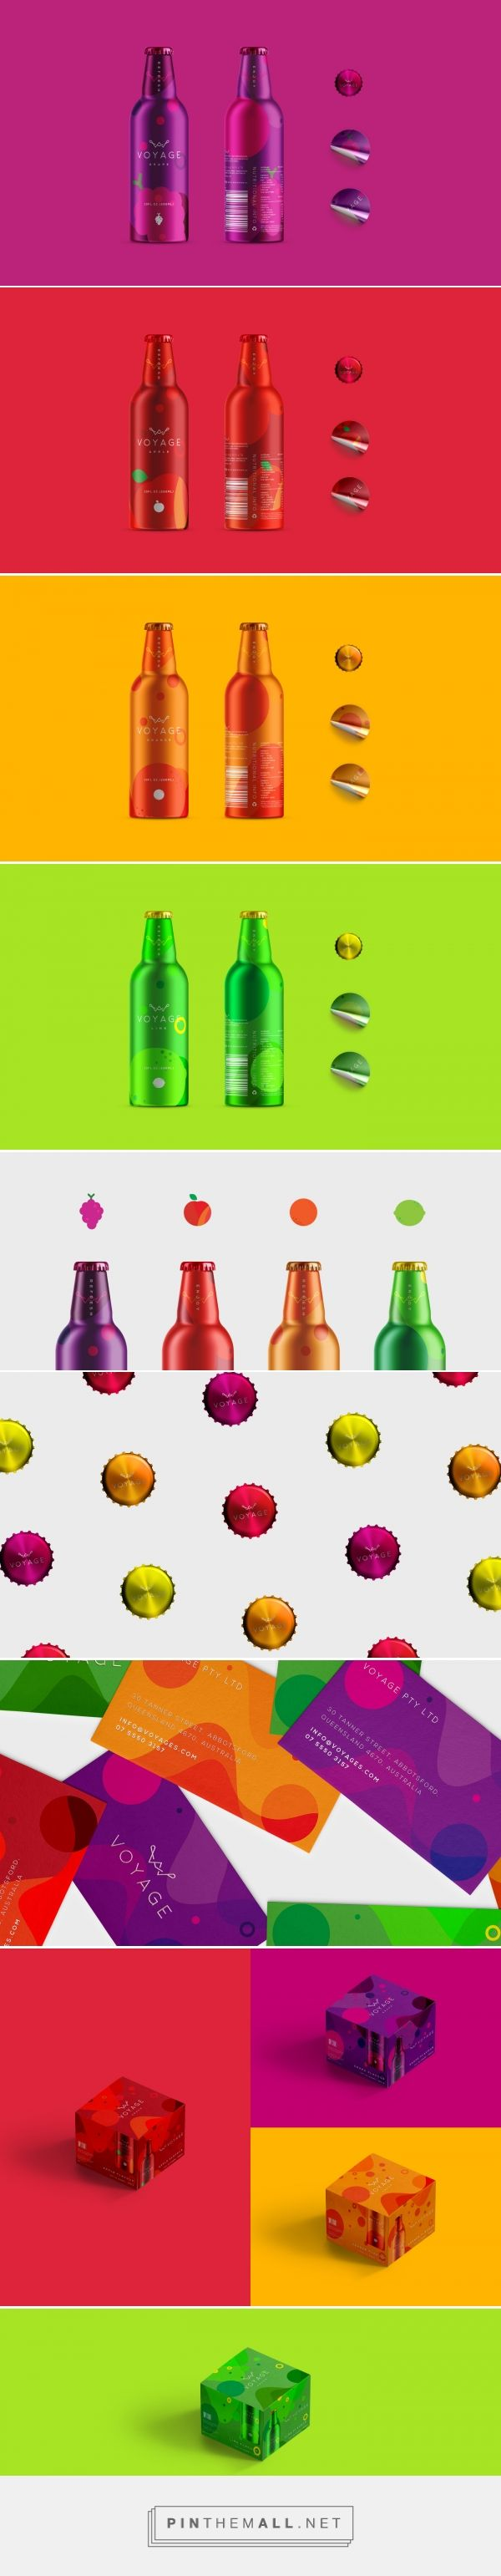 Branding, graphic design and packaging for Voyage on Behance by Anders Chow Brisbane, Australia curated by Packaging Diva PD. Premium sparkling juice product in 4 different flavours.